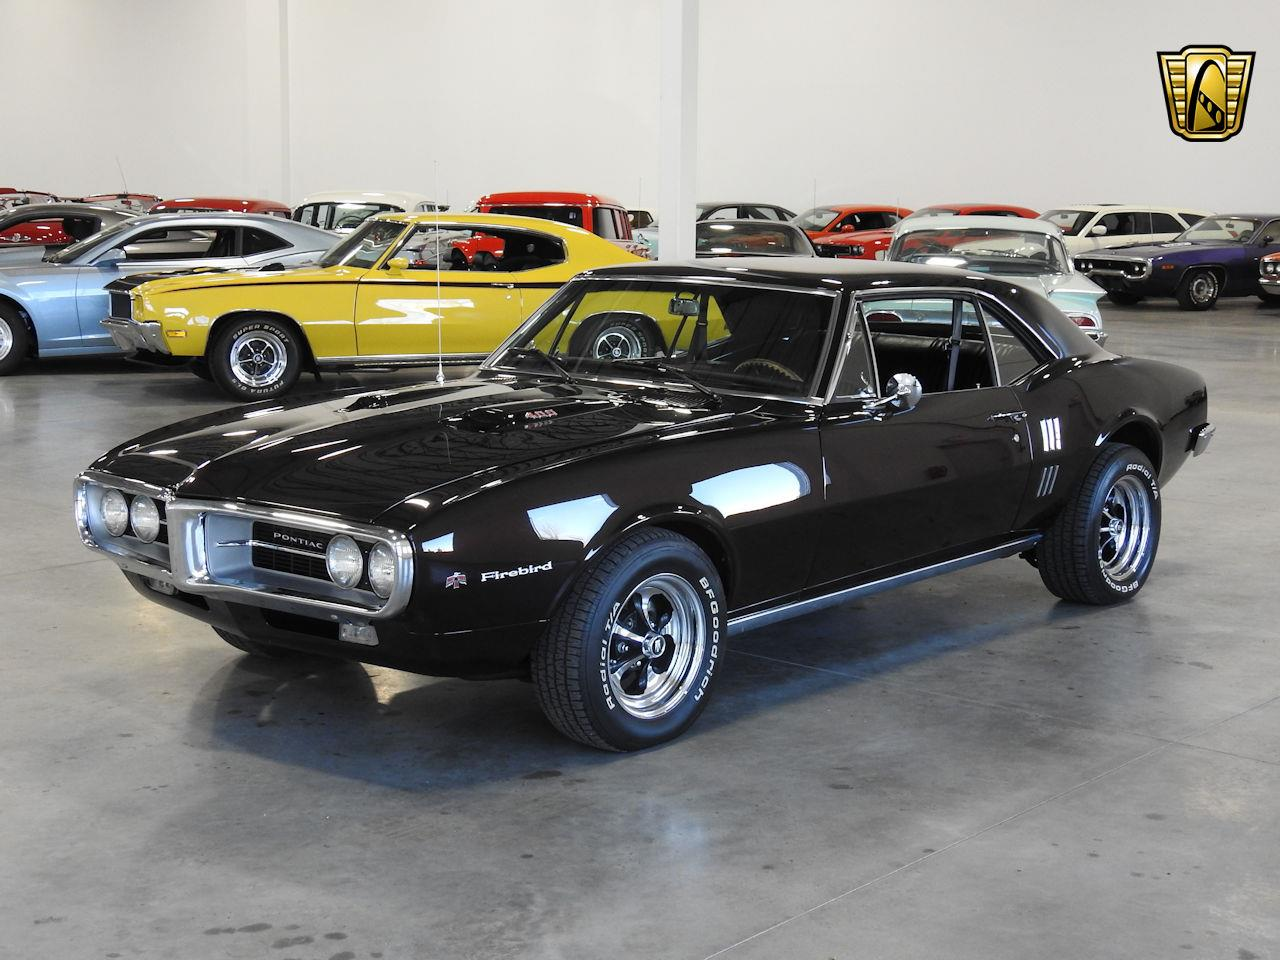 Large Picture of 1967 Pontiac Firebird located in Kenosha Wisconsin - $34,995.00 Offered by Gateway Classic Cars - Milwaukee - MFCU